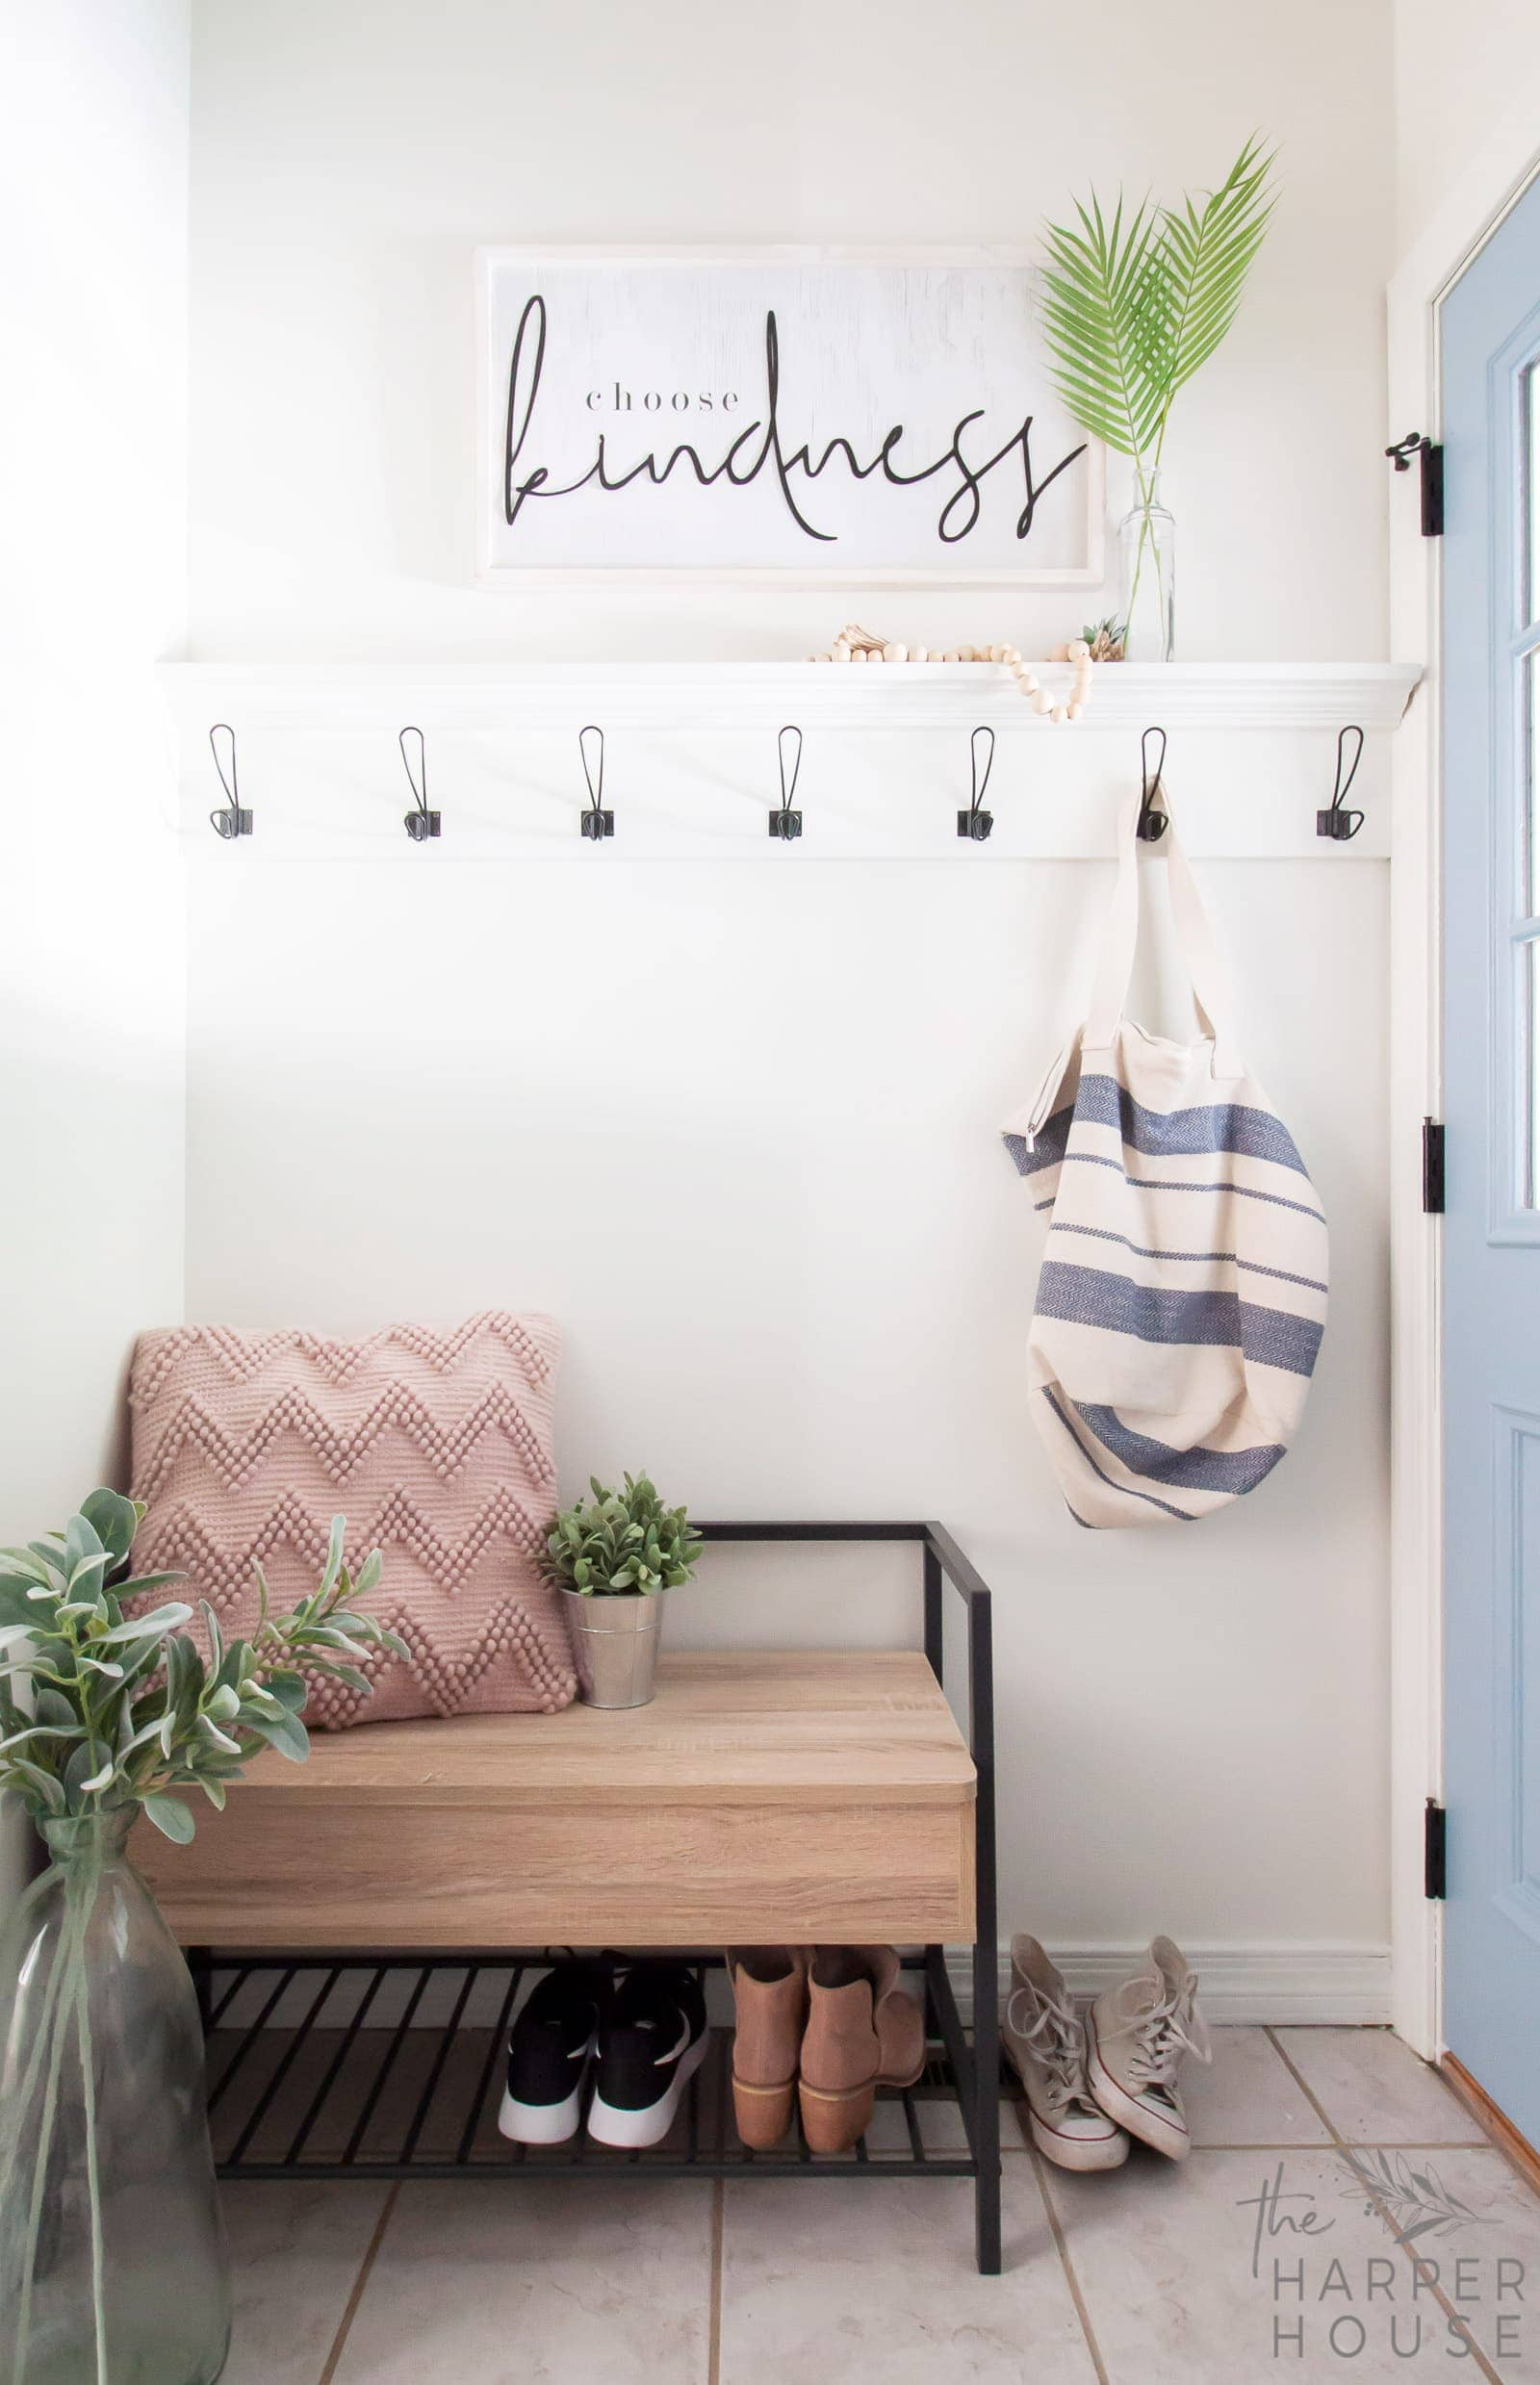 Small Laundry Room Ideas You Need To See The Harper House